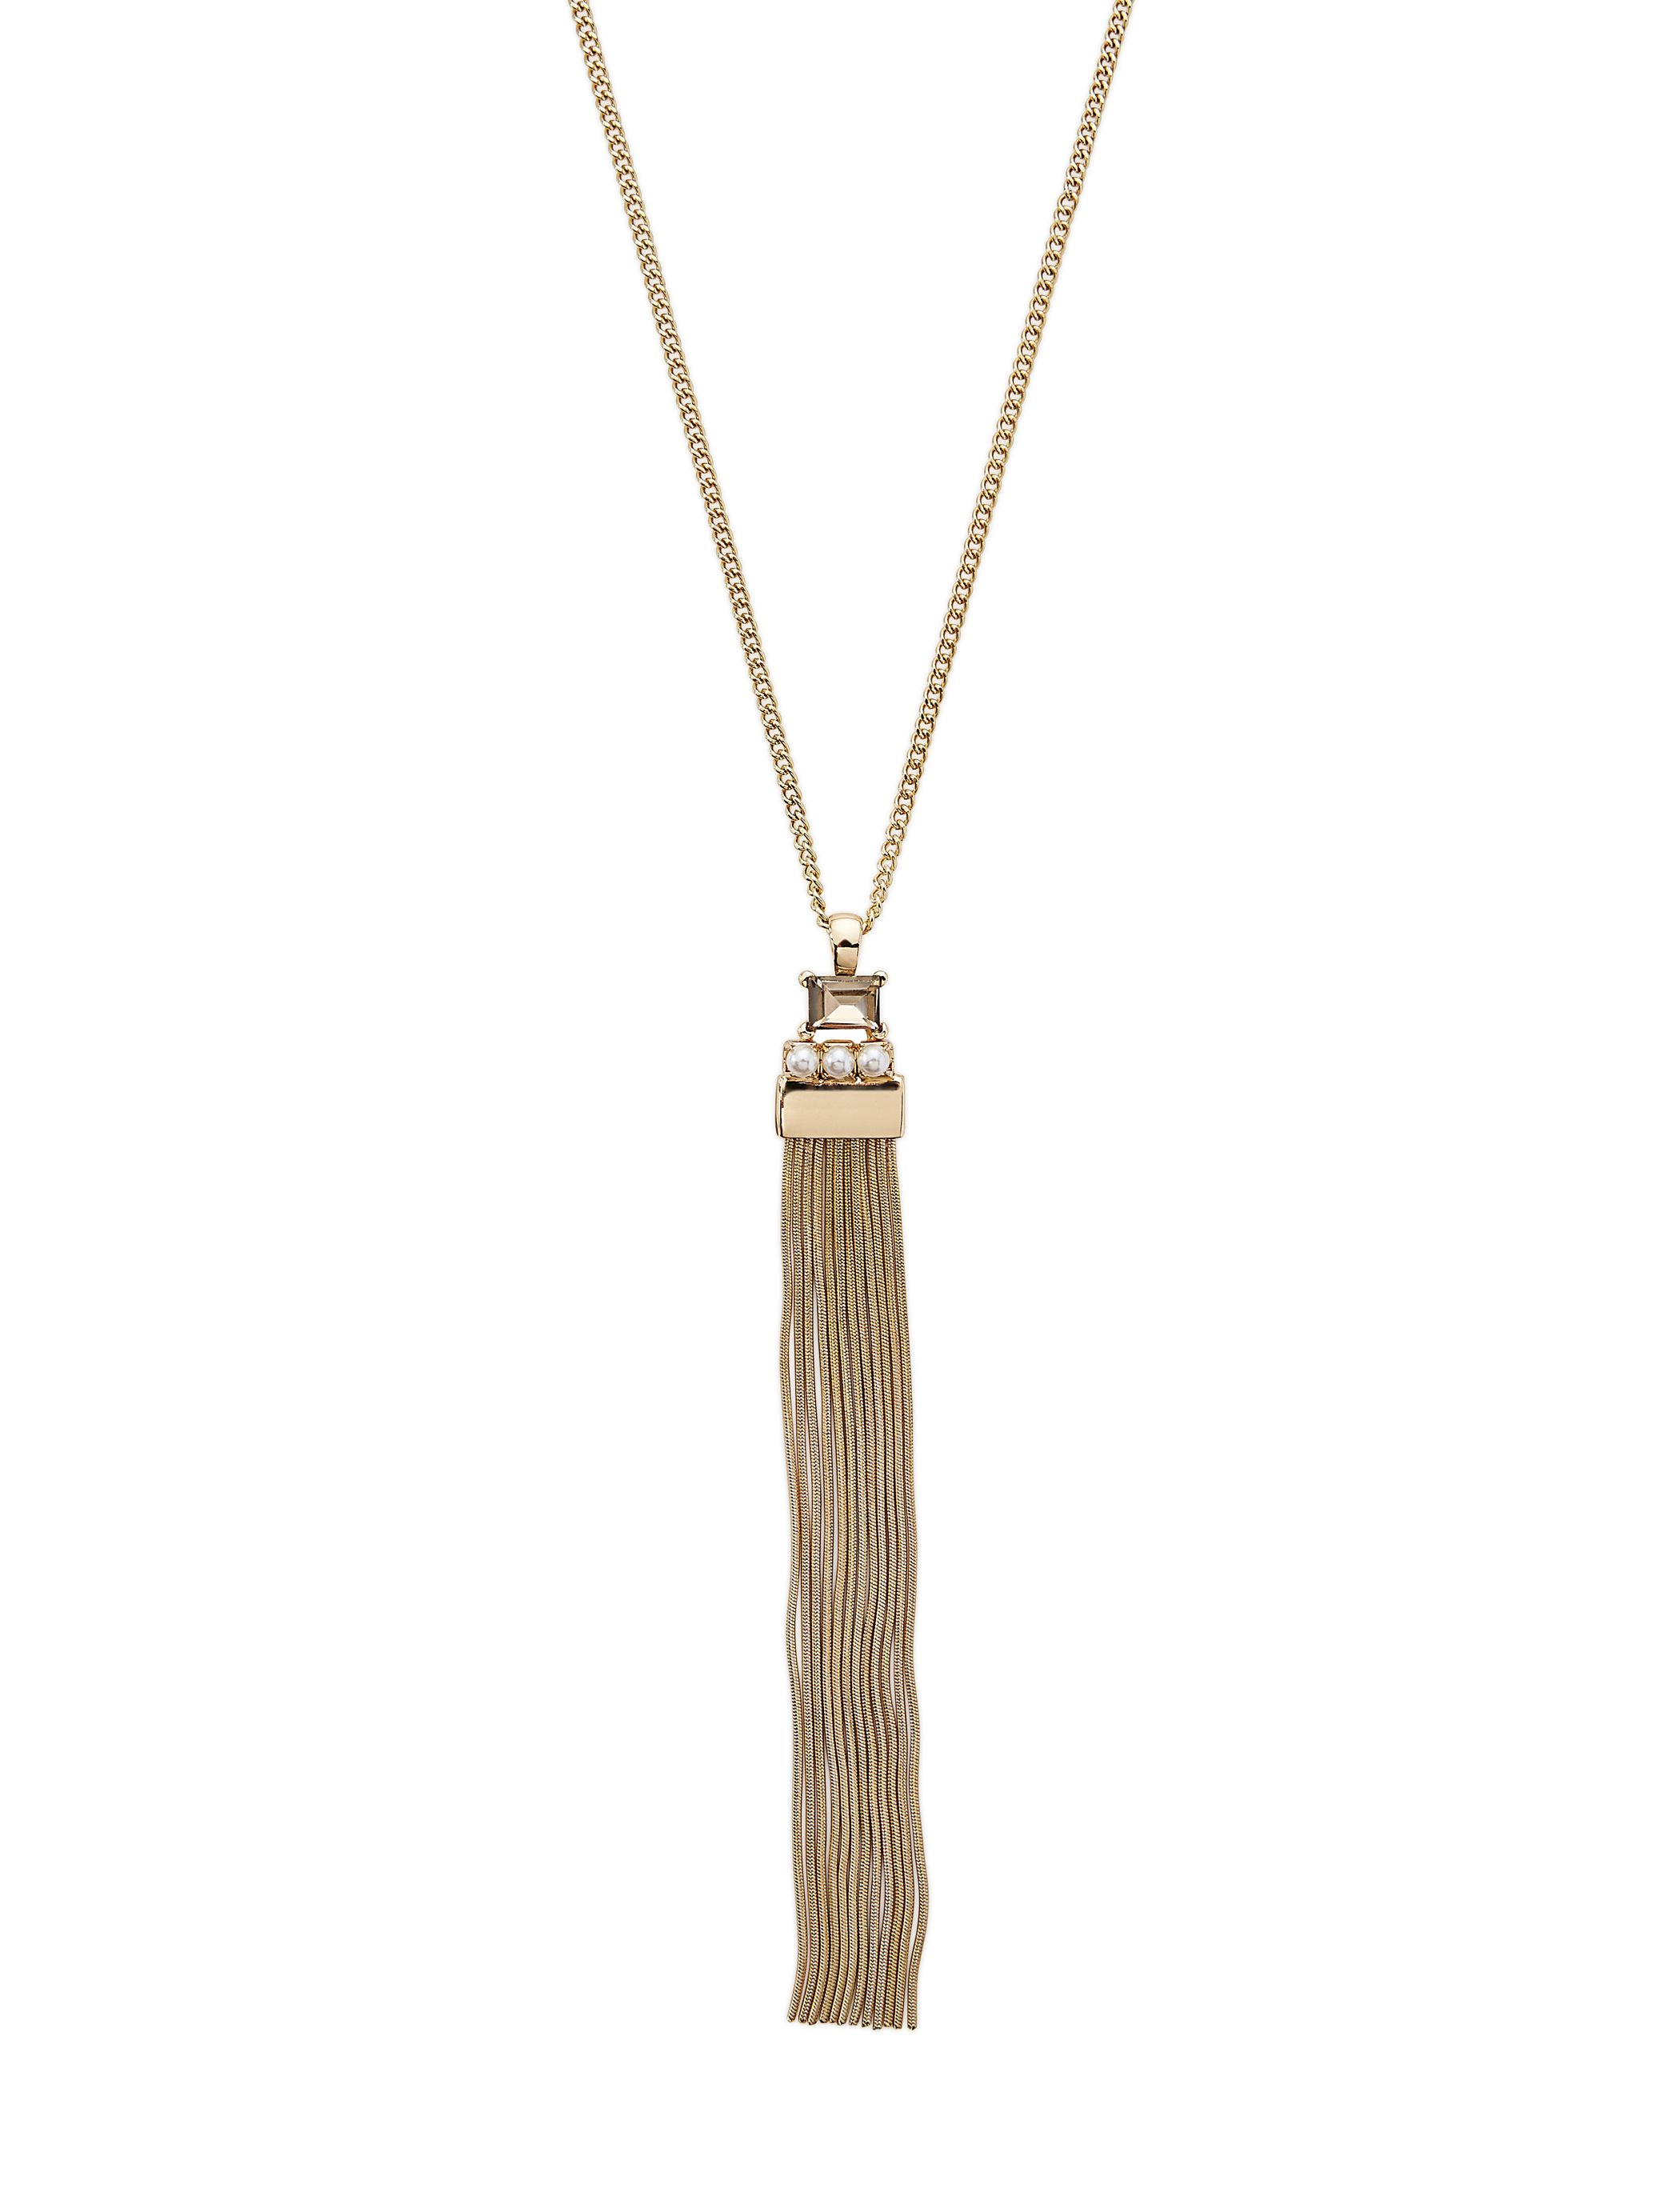 Pearl Detail Tassel Necklace - A minimalistic design with fluid movement, this modern necklace is a masterpiece around your neck.